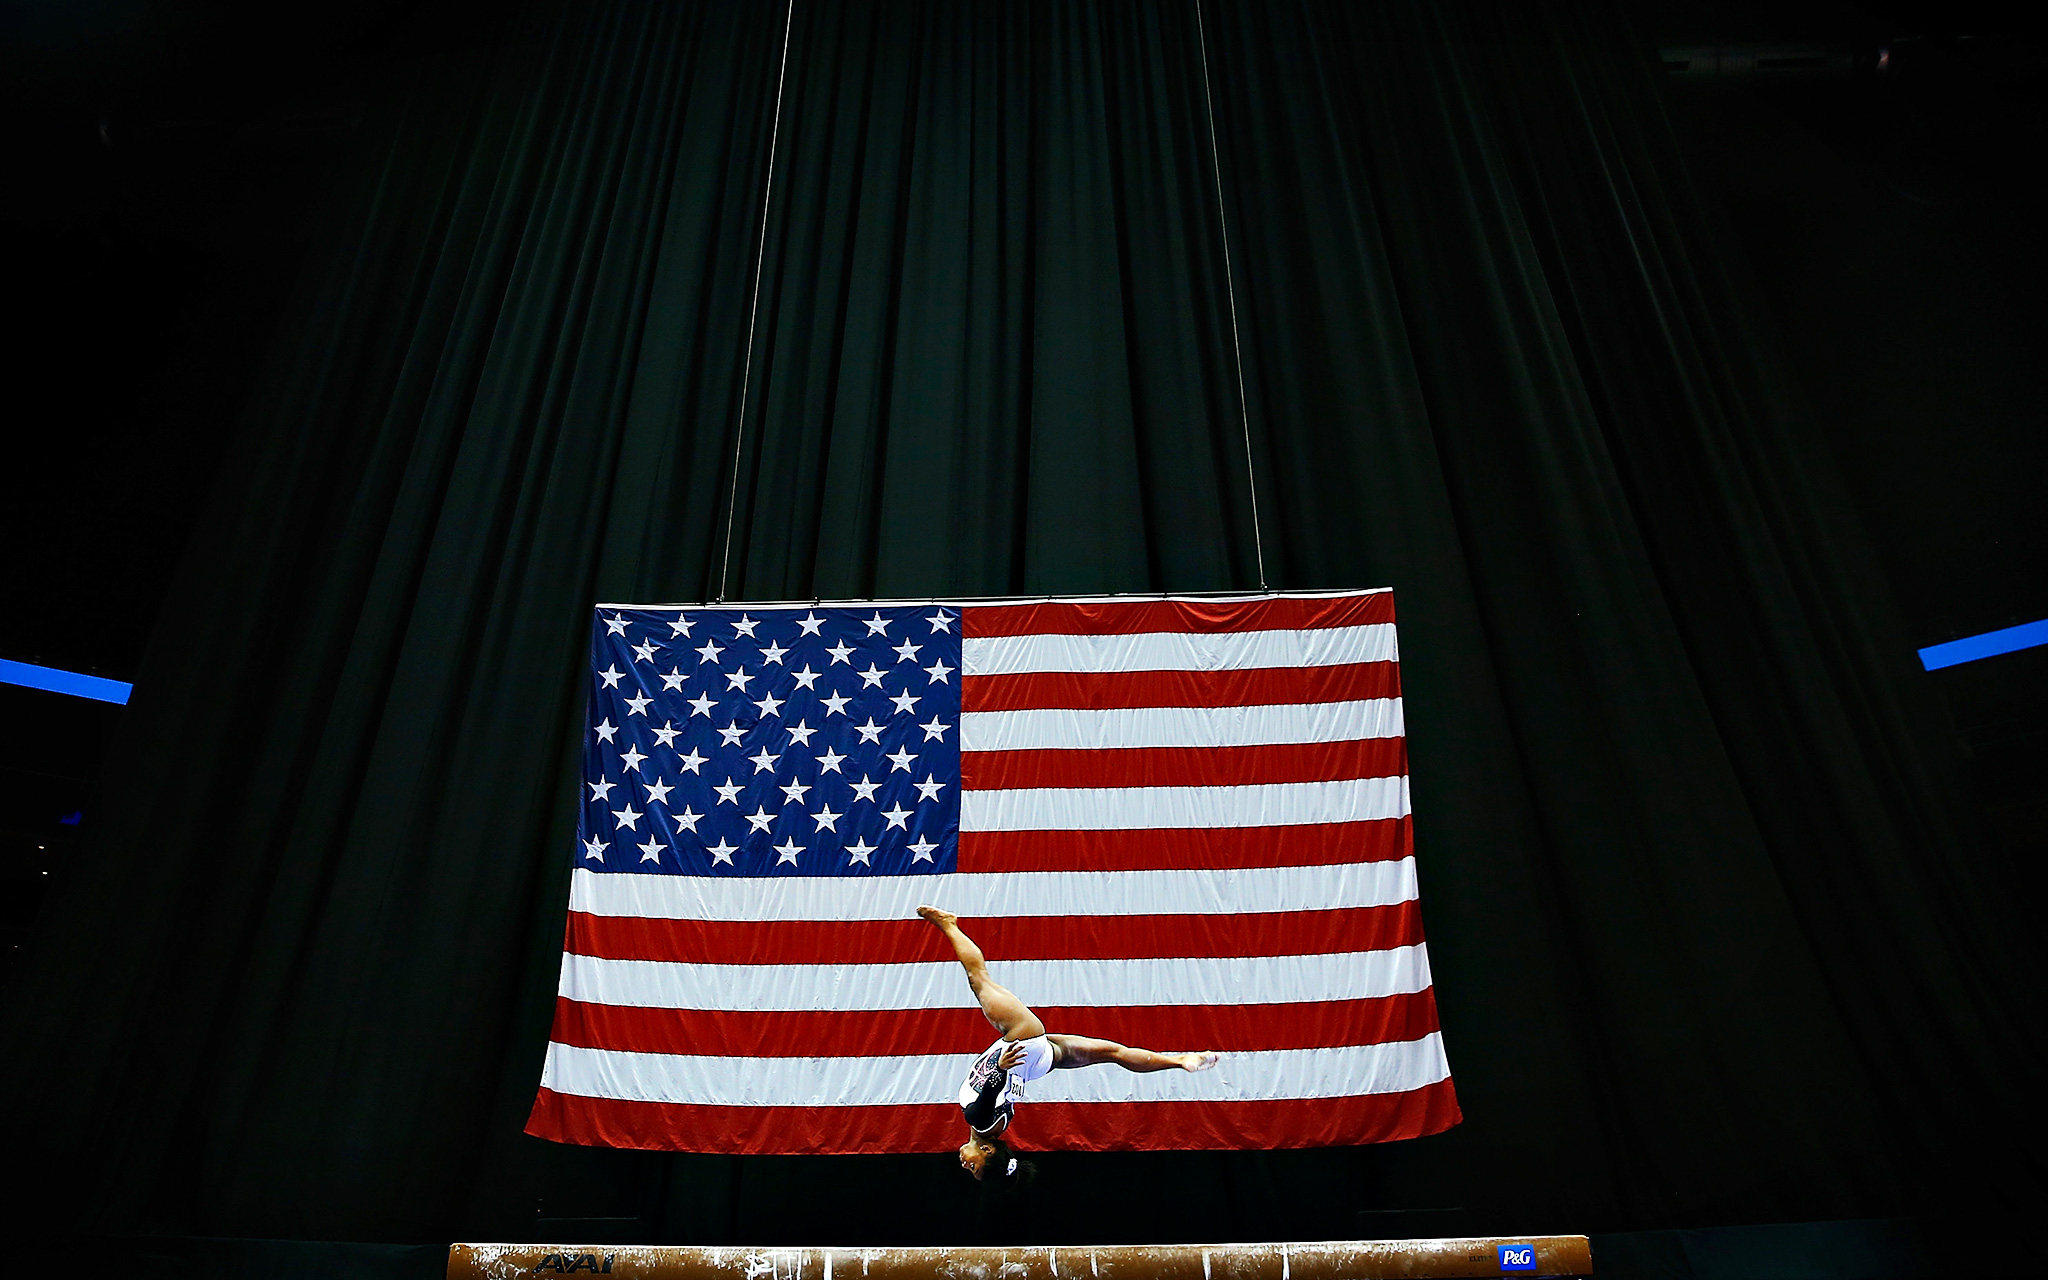 Simone Biles competes on the balance beam during the preliminaries at the U.S. women's gymnastics championships at Consol Energy Center in Pittsburgh. Biles sprinted to the lead as she closes in on a second straight national title.